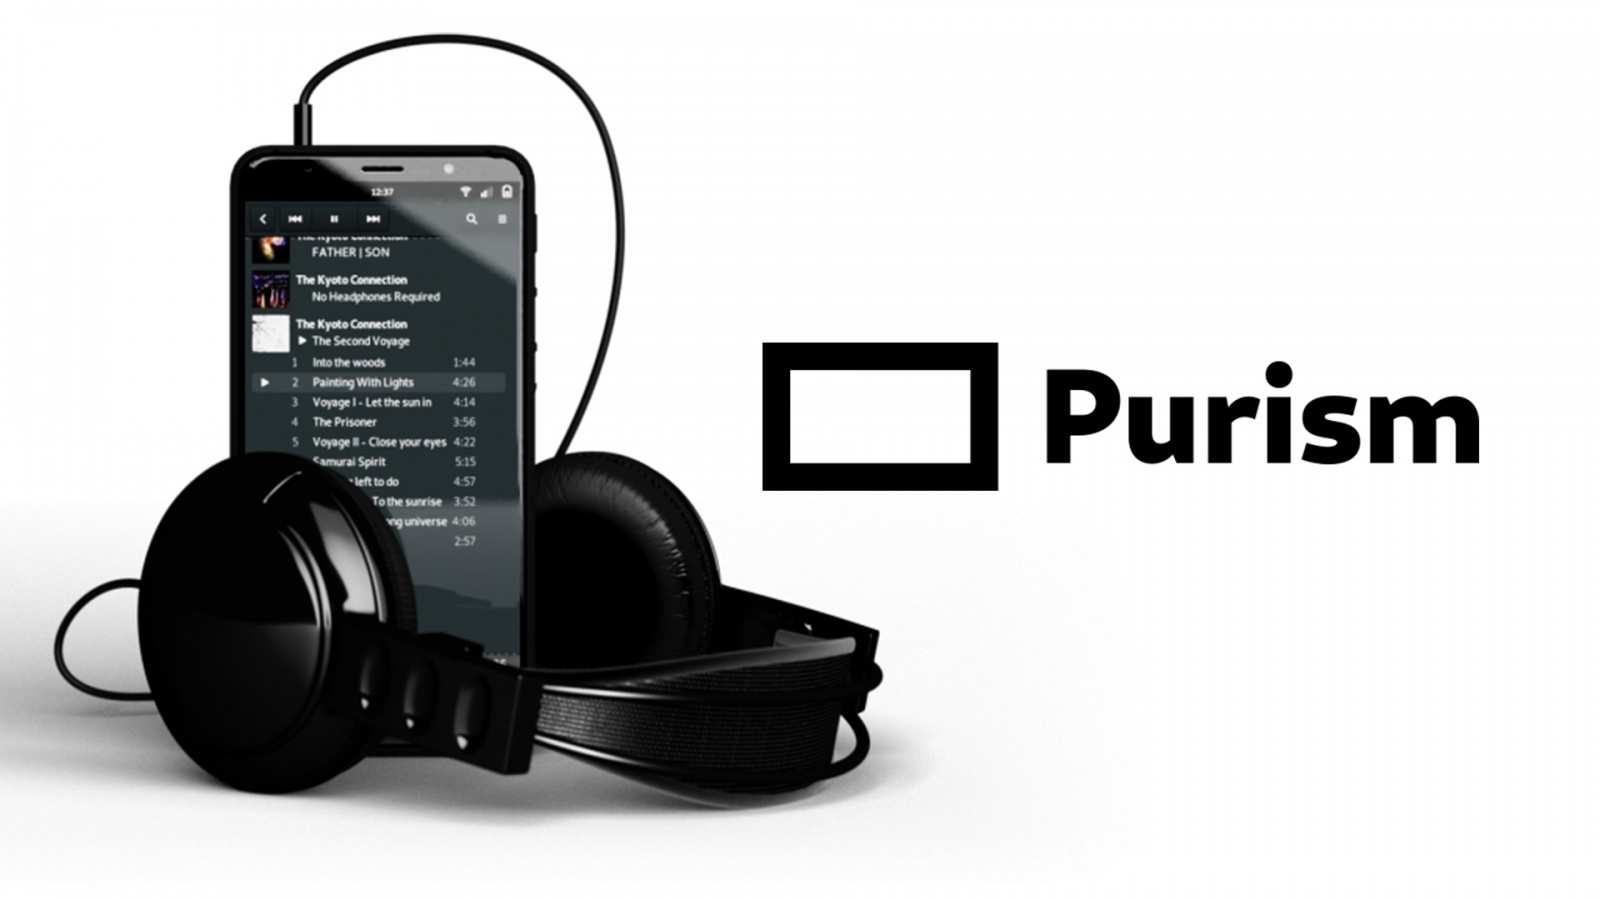 Purism - Security Focused Software & Hardware